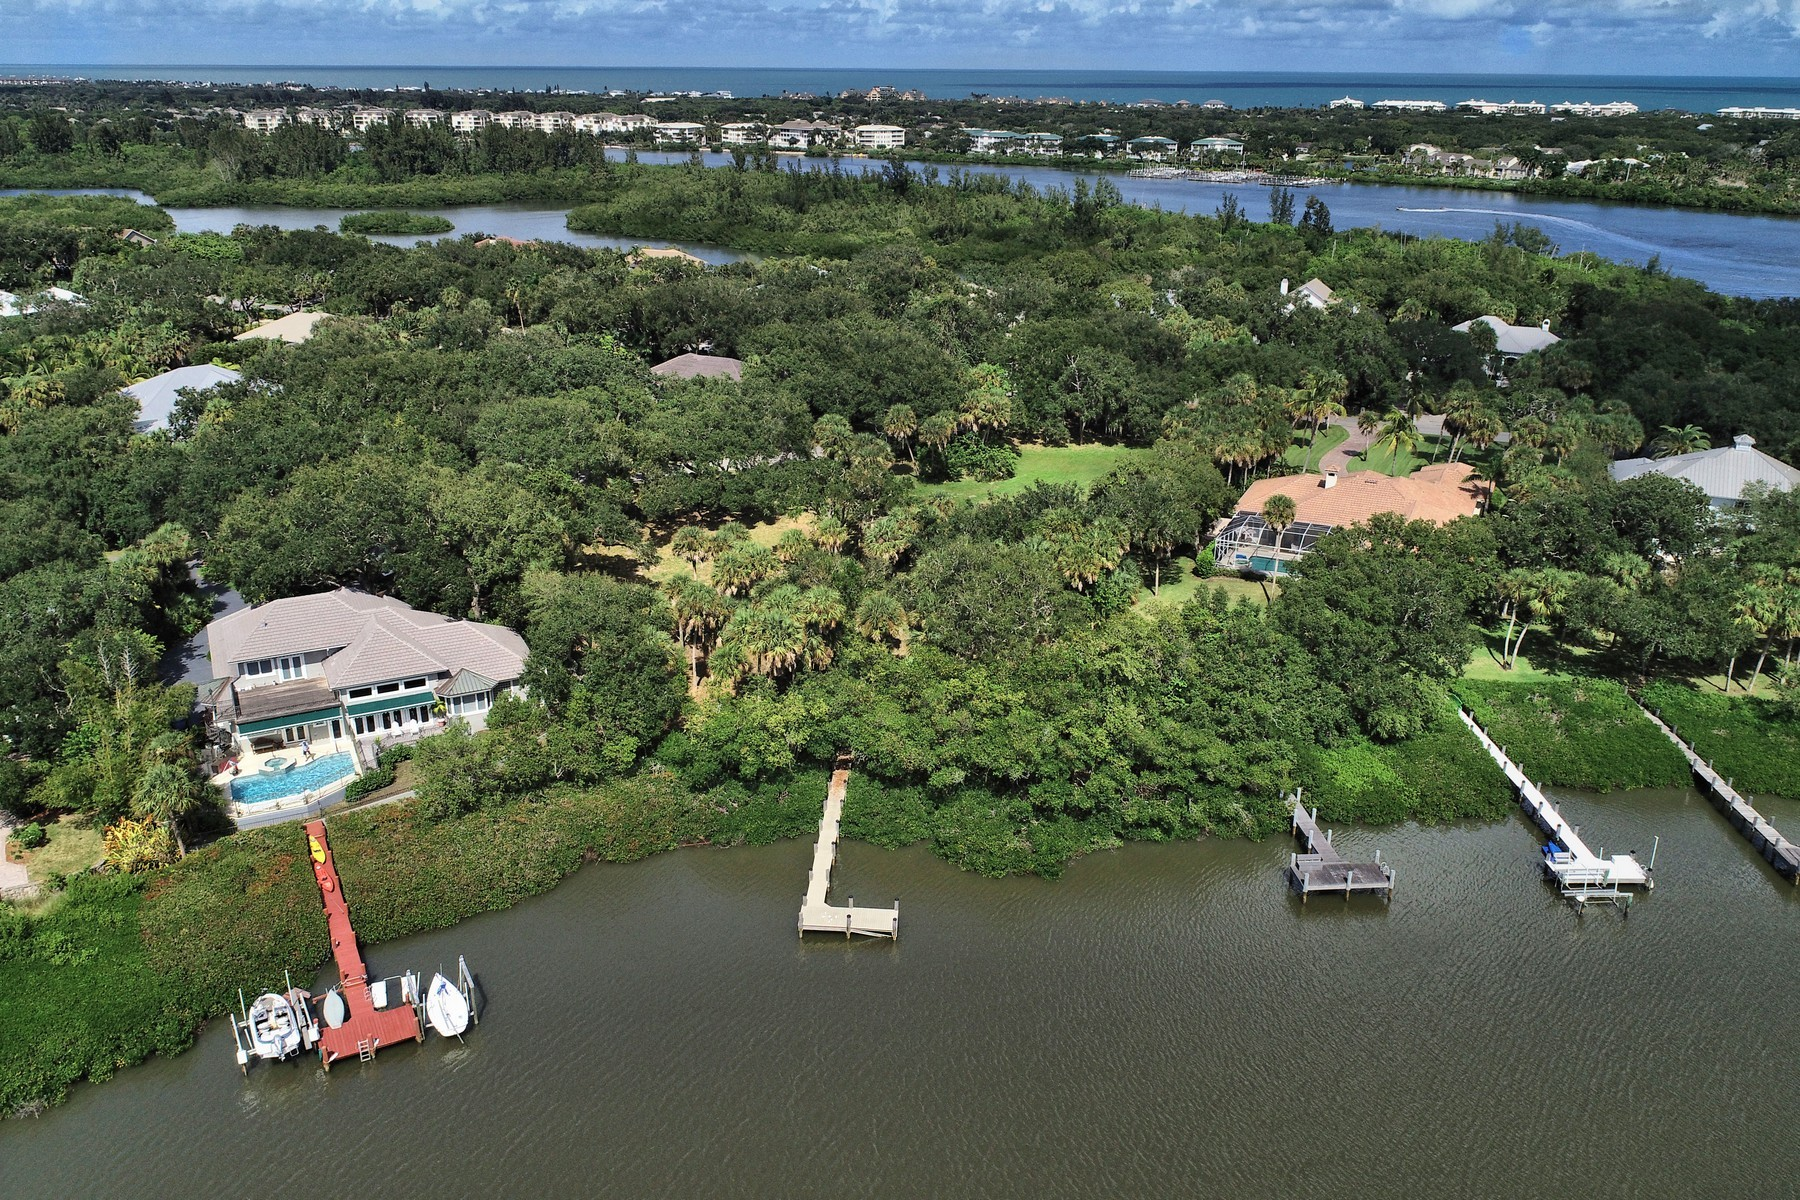 Property for Sale at Direct Riverfront With Dock 2545 Riverview Court Vero Beach, Florida 32963 United States